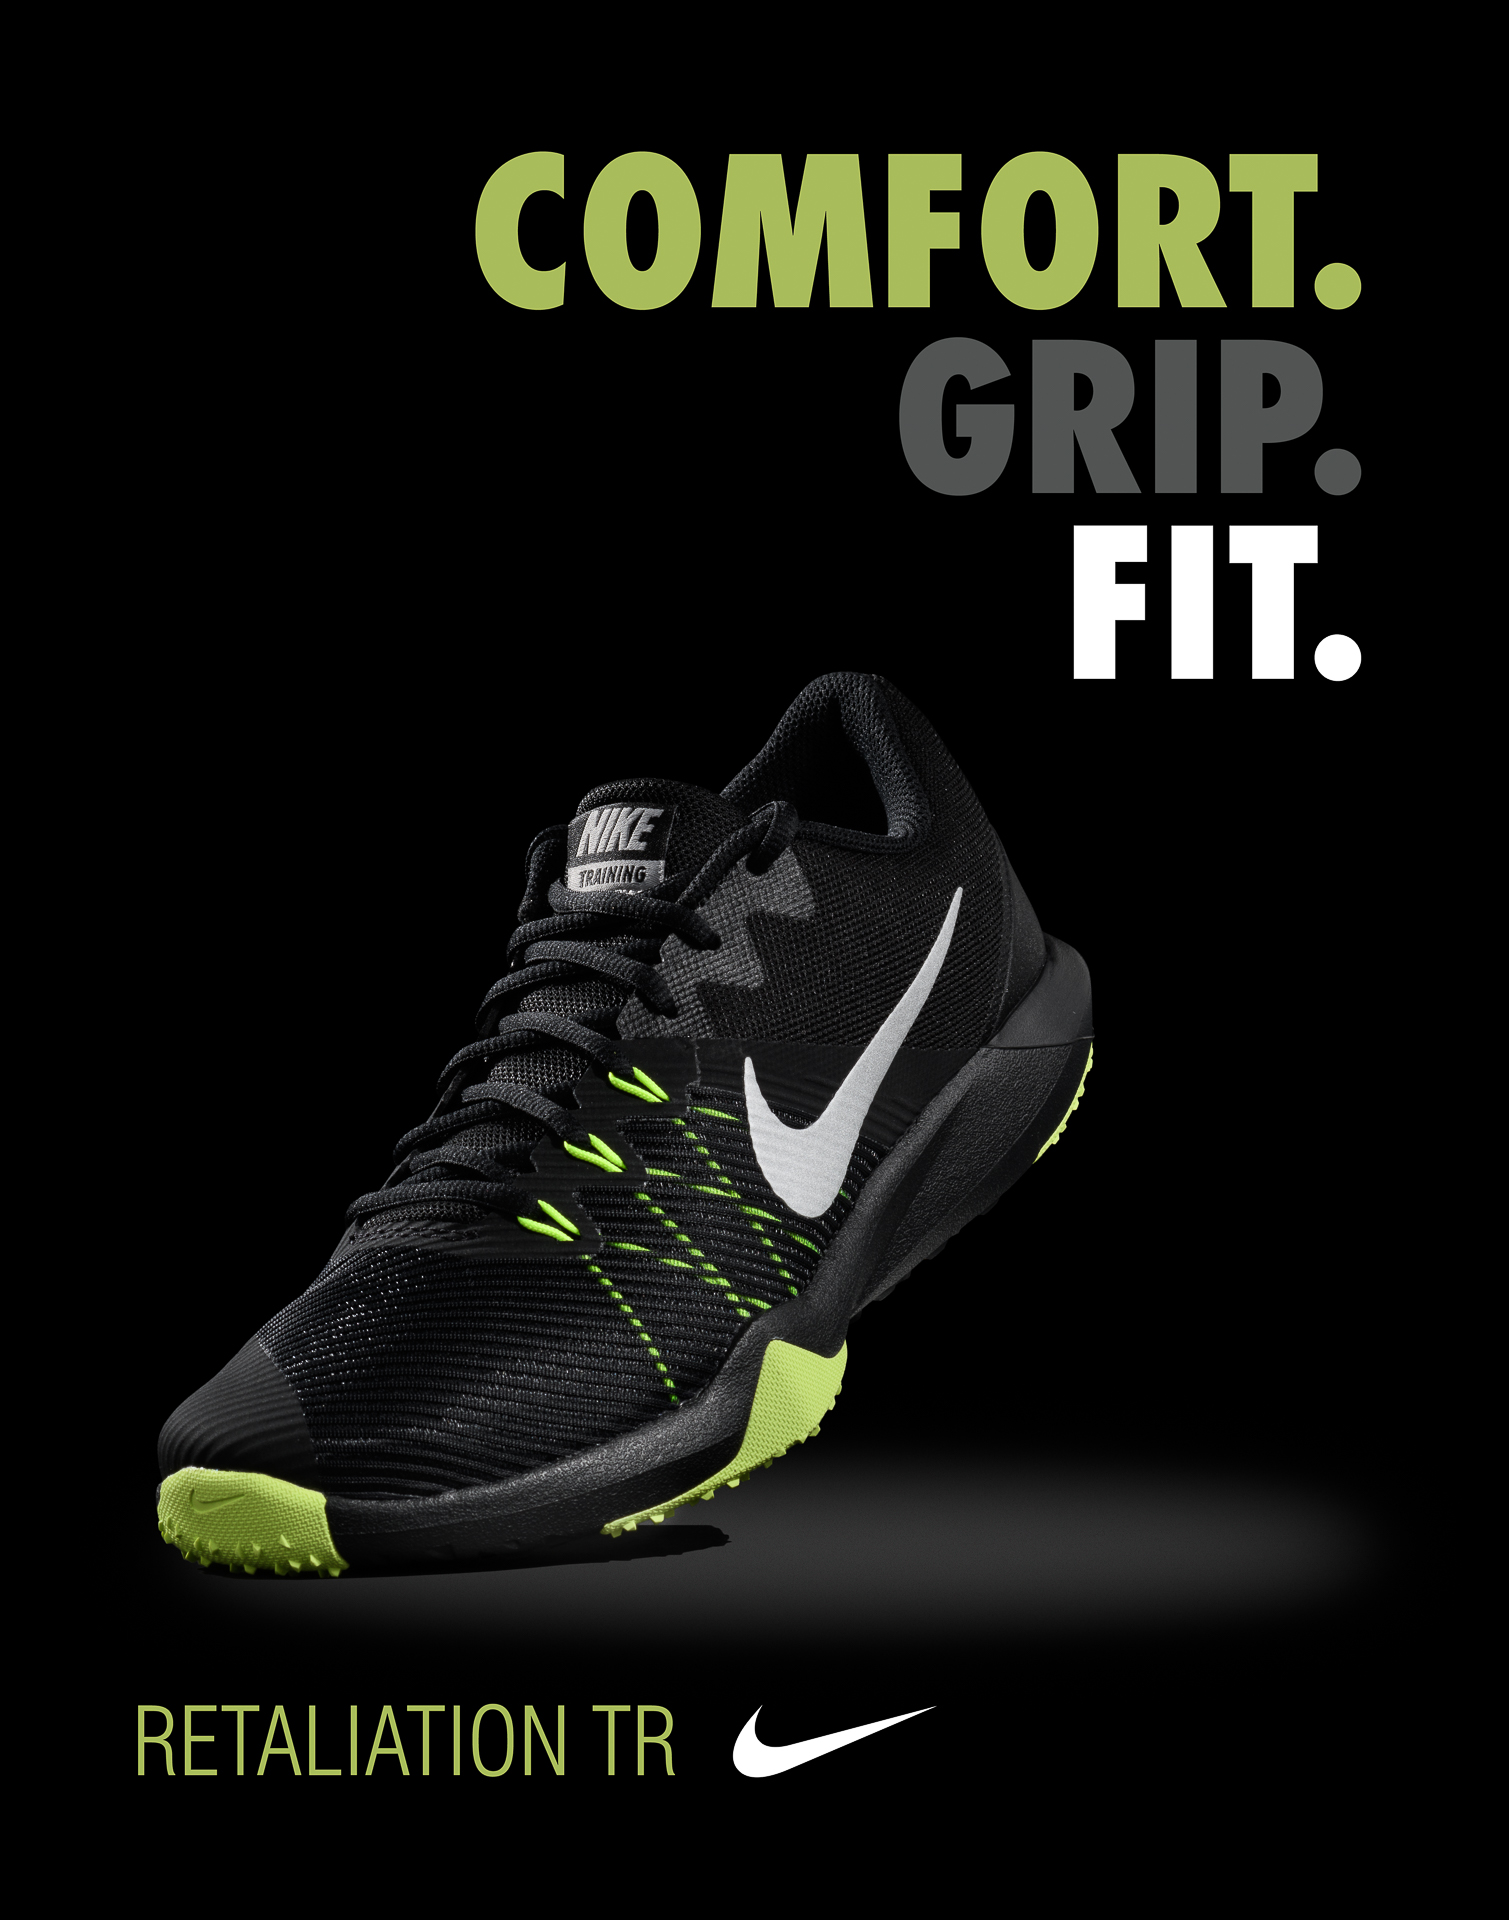 Imagined Nike Ad Design Exercise